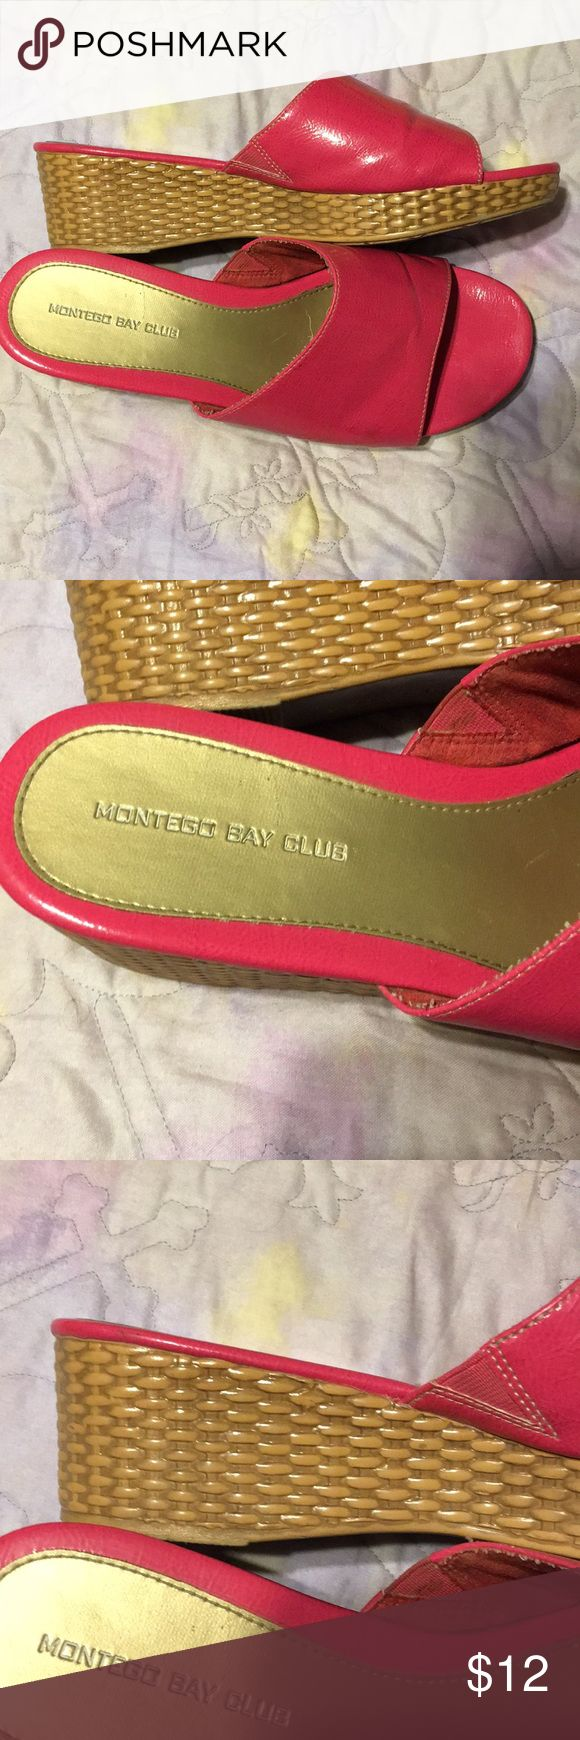 Hot pink heeled slide wedges size 10W These are hot pink open toed slides with 2 inch heels They are Montego Bay Club brand Size 10W The heels are basket braided look.  Very comfortable  Thanks for checking out my closet  Happy New Years 🎉 Montego Bay Club Shoes Wedges